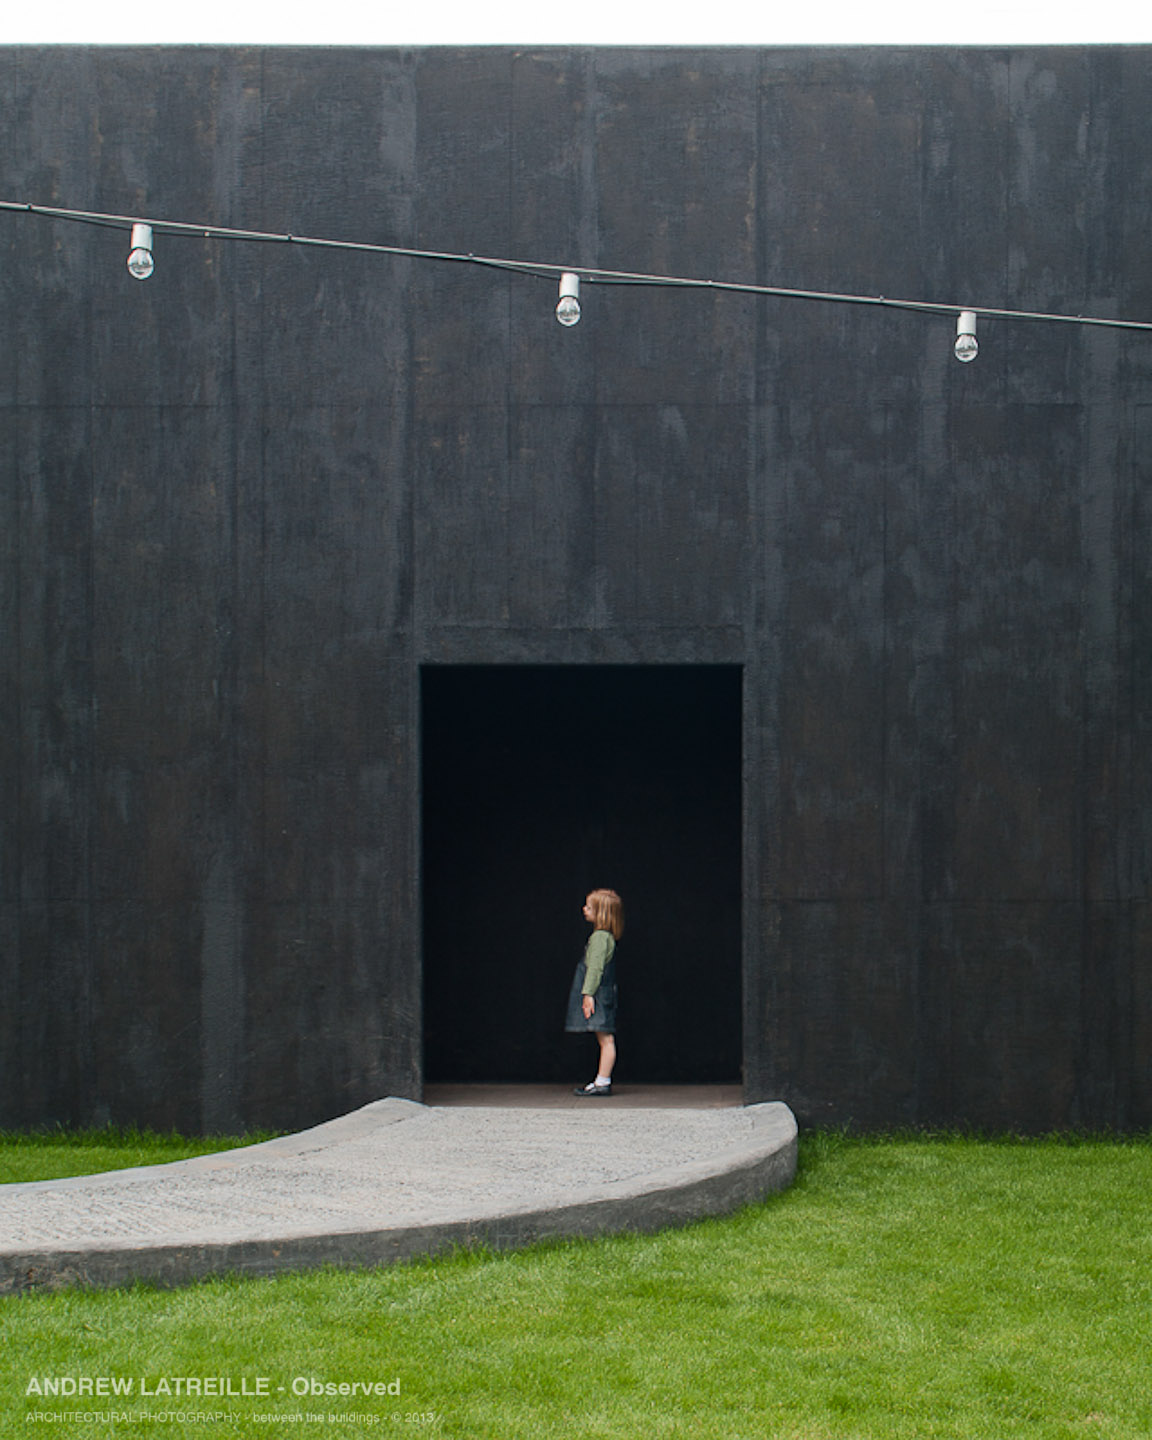 2011-Serpentine-pavilion-London-Peter-Zumthor